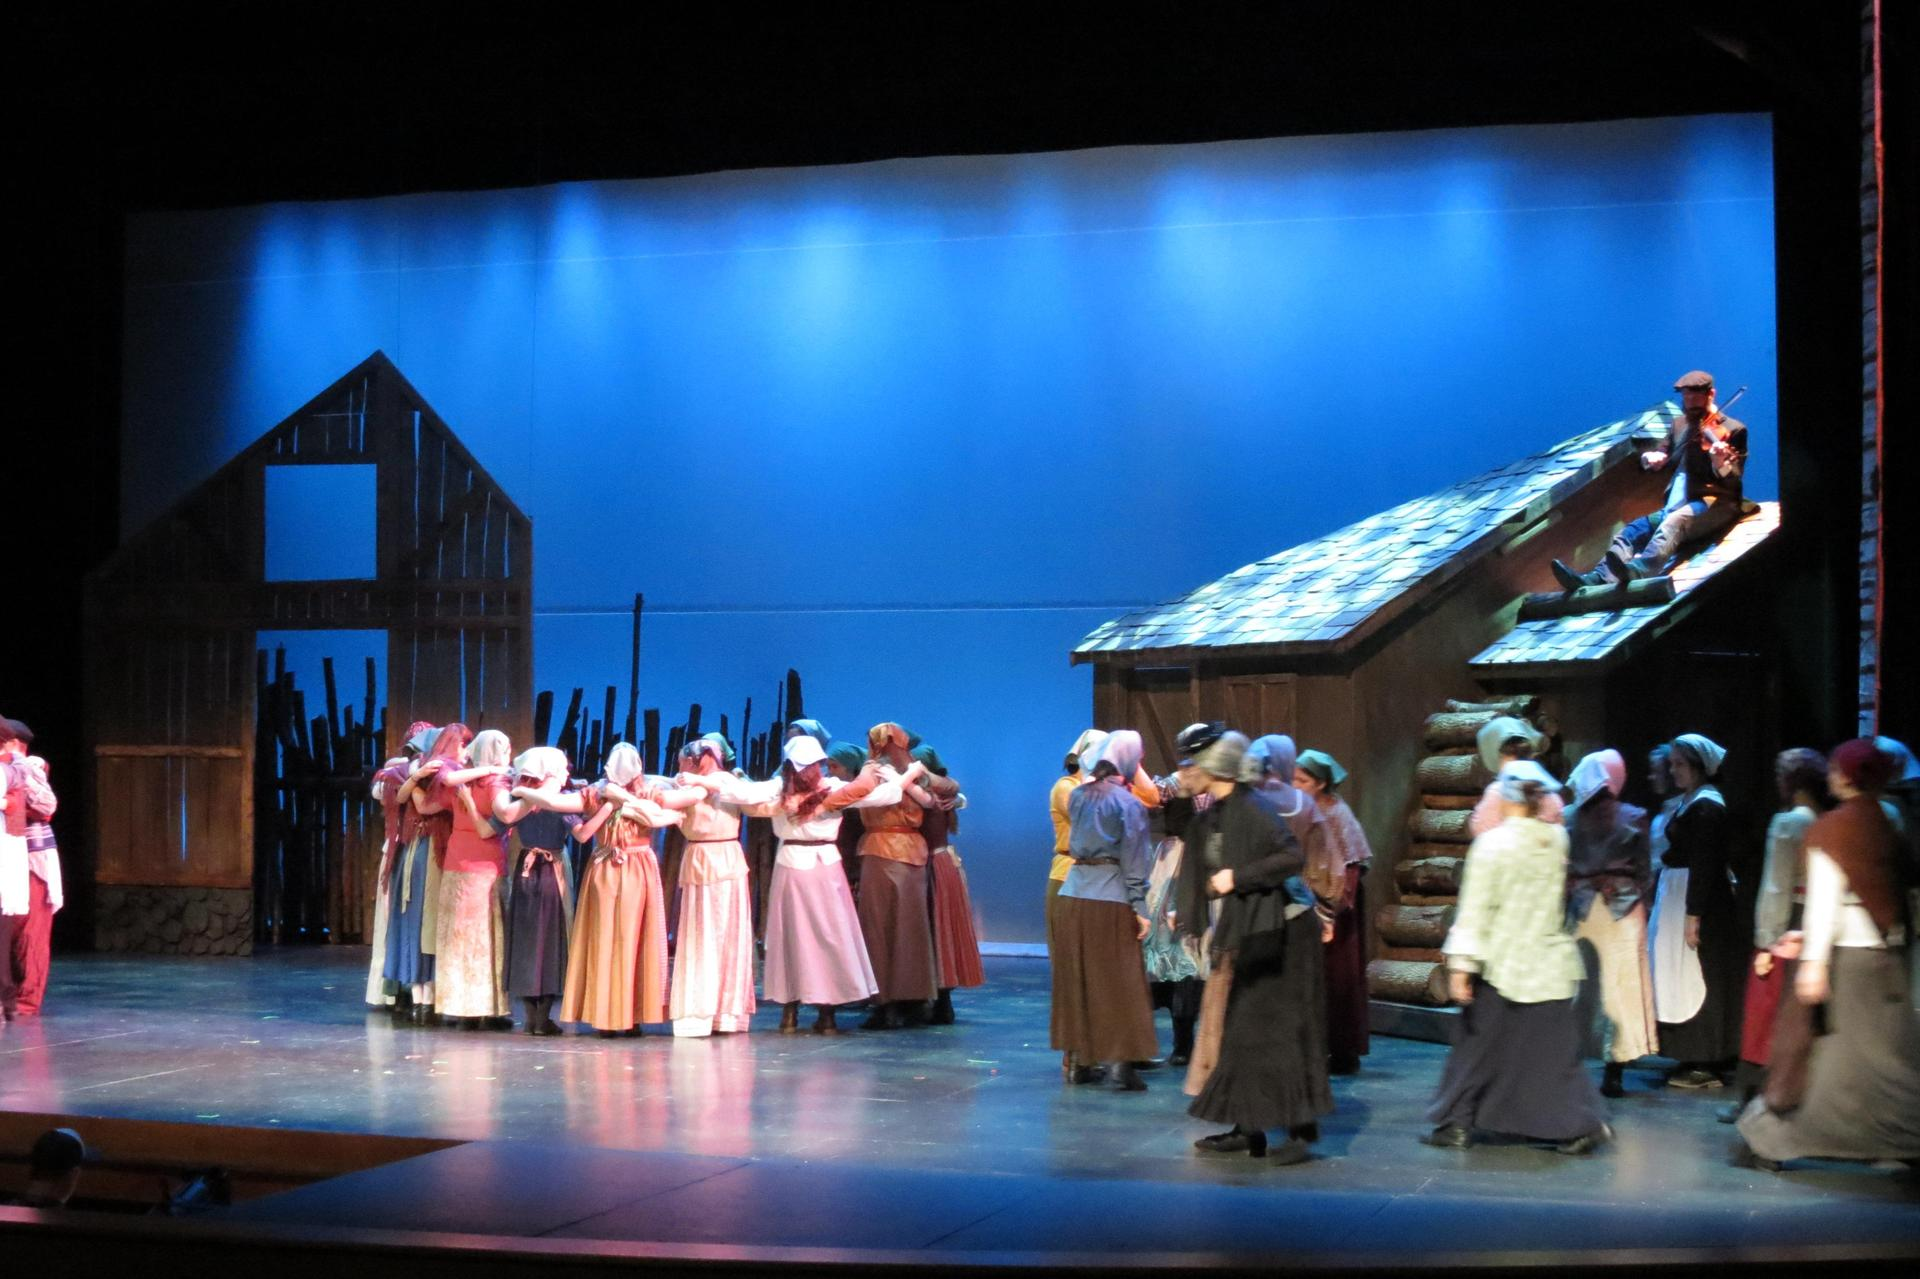 fiddler on the roof performance